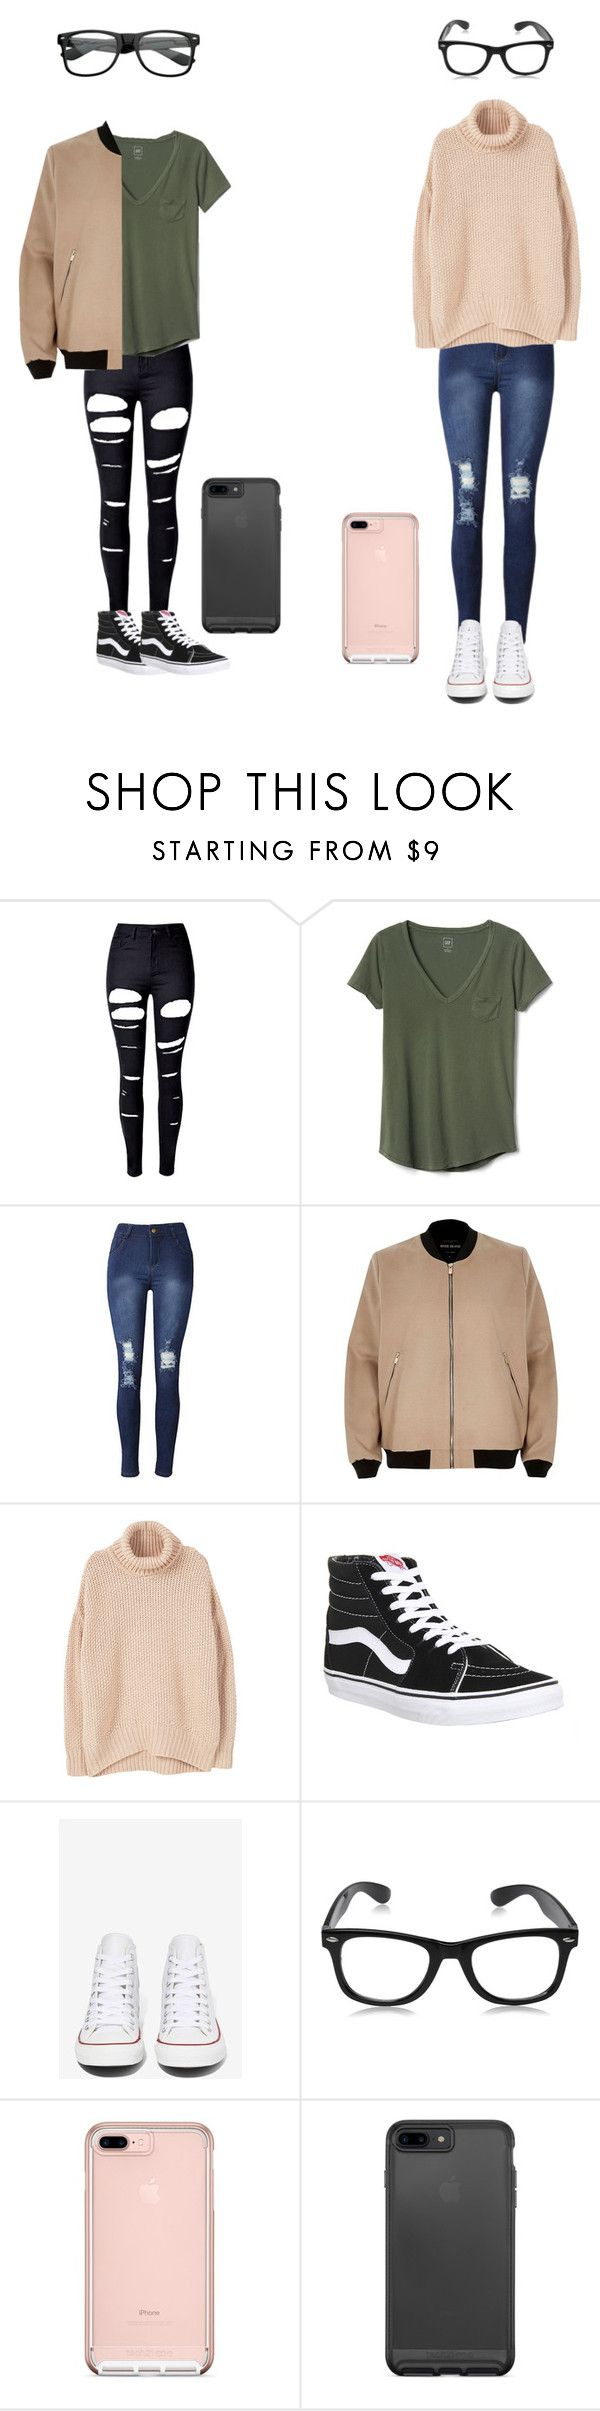 """""""Color coordinating"""" by roxas-lightwood on Polyvore featuring WithChic, Gap, River Island, MANGO, Vans and Converse"""